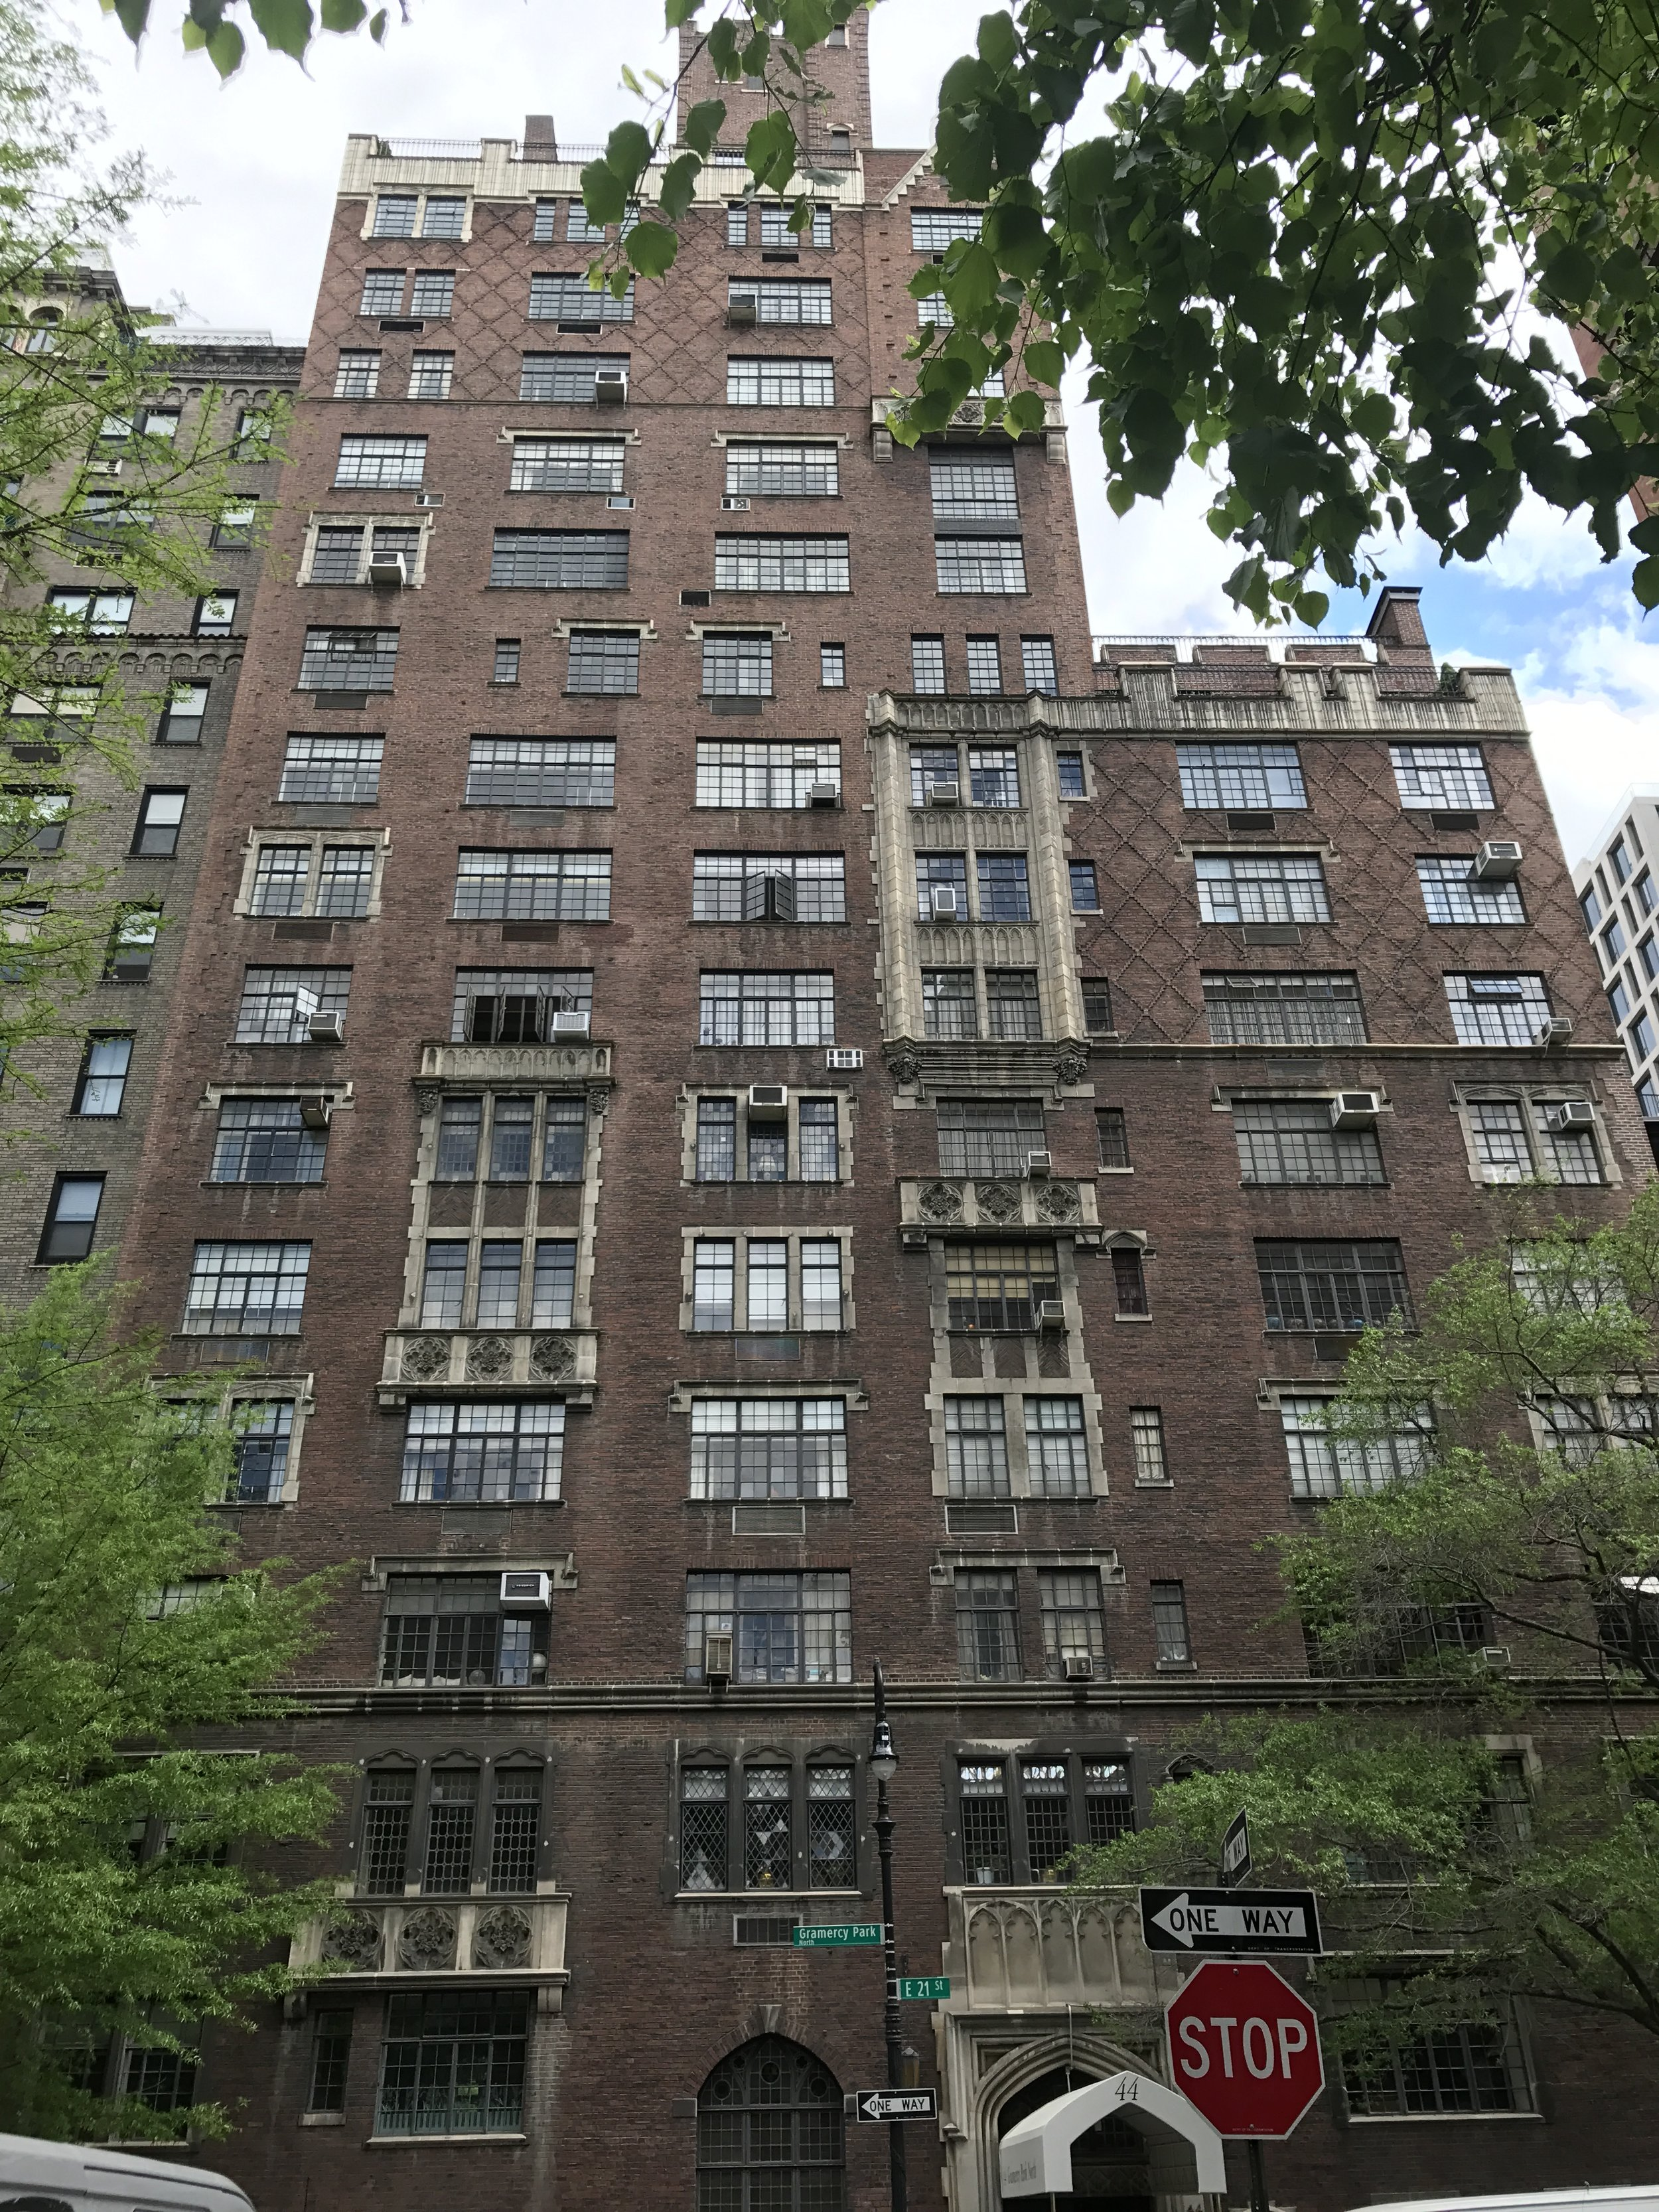 44 Gramercy Park North - Architect: Hottenroth + Joseph Architects17 story residential building